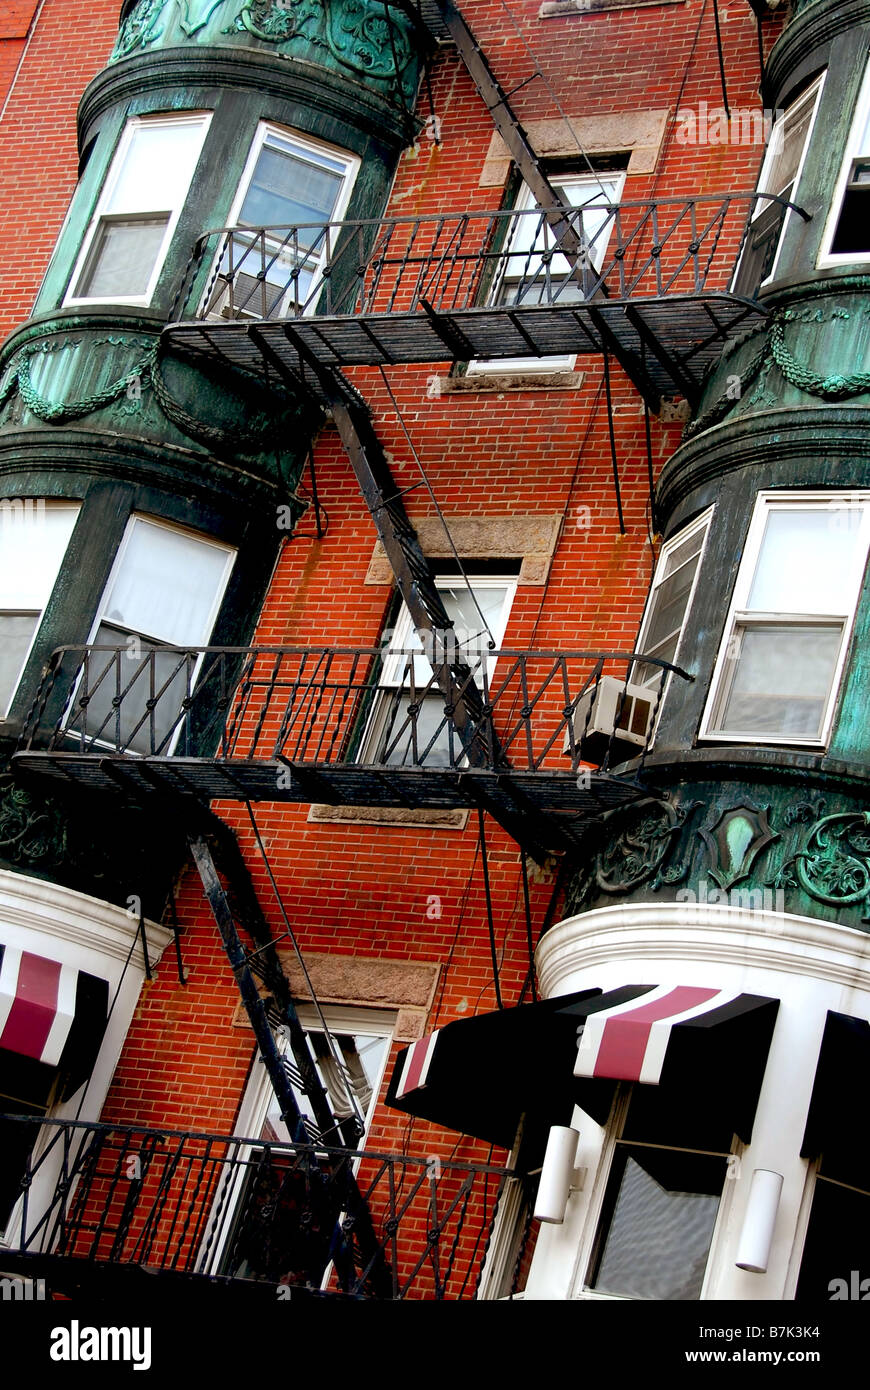 Lovely Fragment Of A Red Brick House In Boston Historical North End With Wrought  Iron Balconies And Fire Escapes